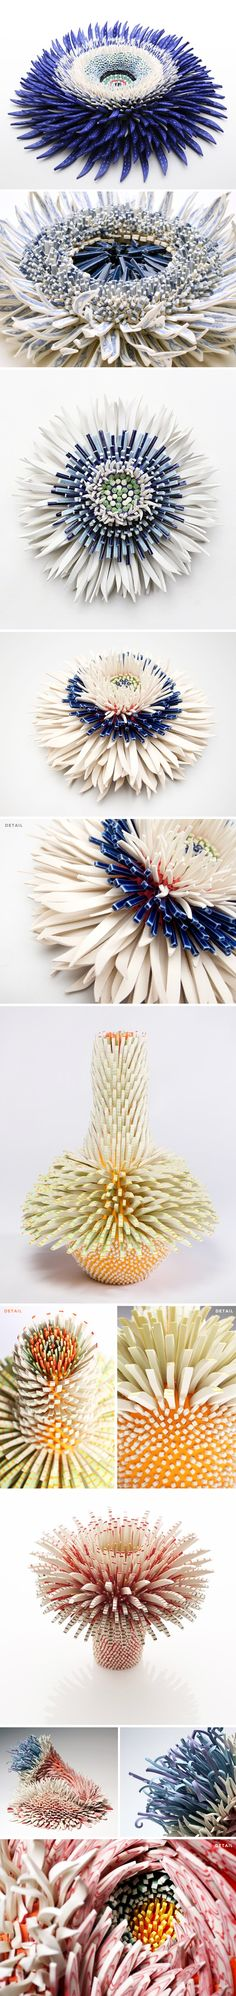 zemer peled ceramics <3 (on the podcast today!)